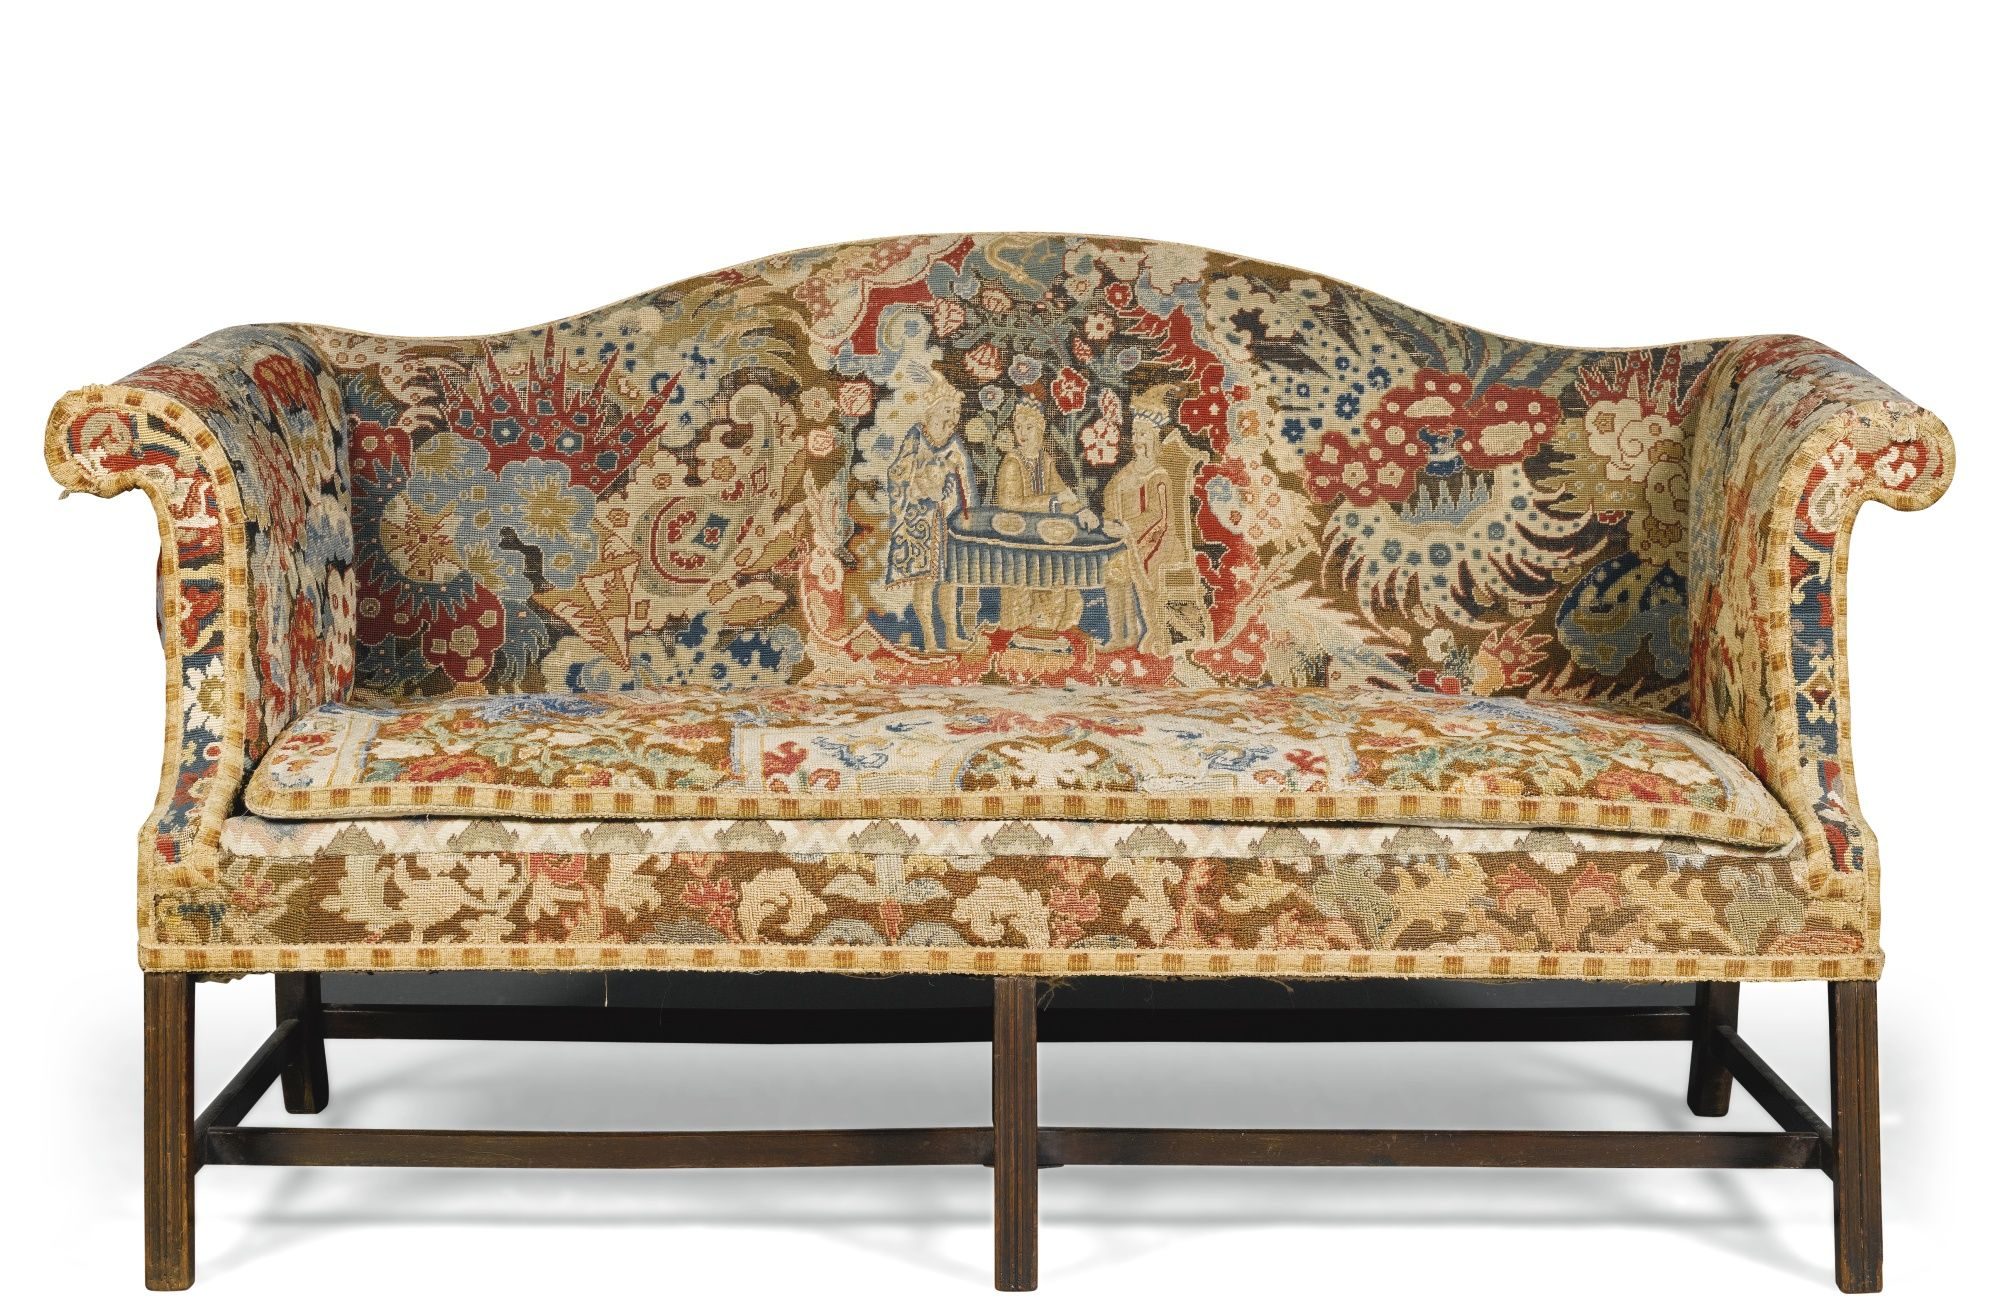 A Fabulous Needlepoint Covered Camelback Sofa Victorian